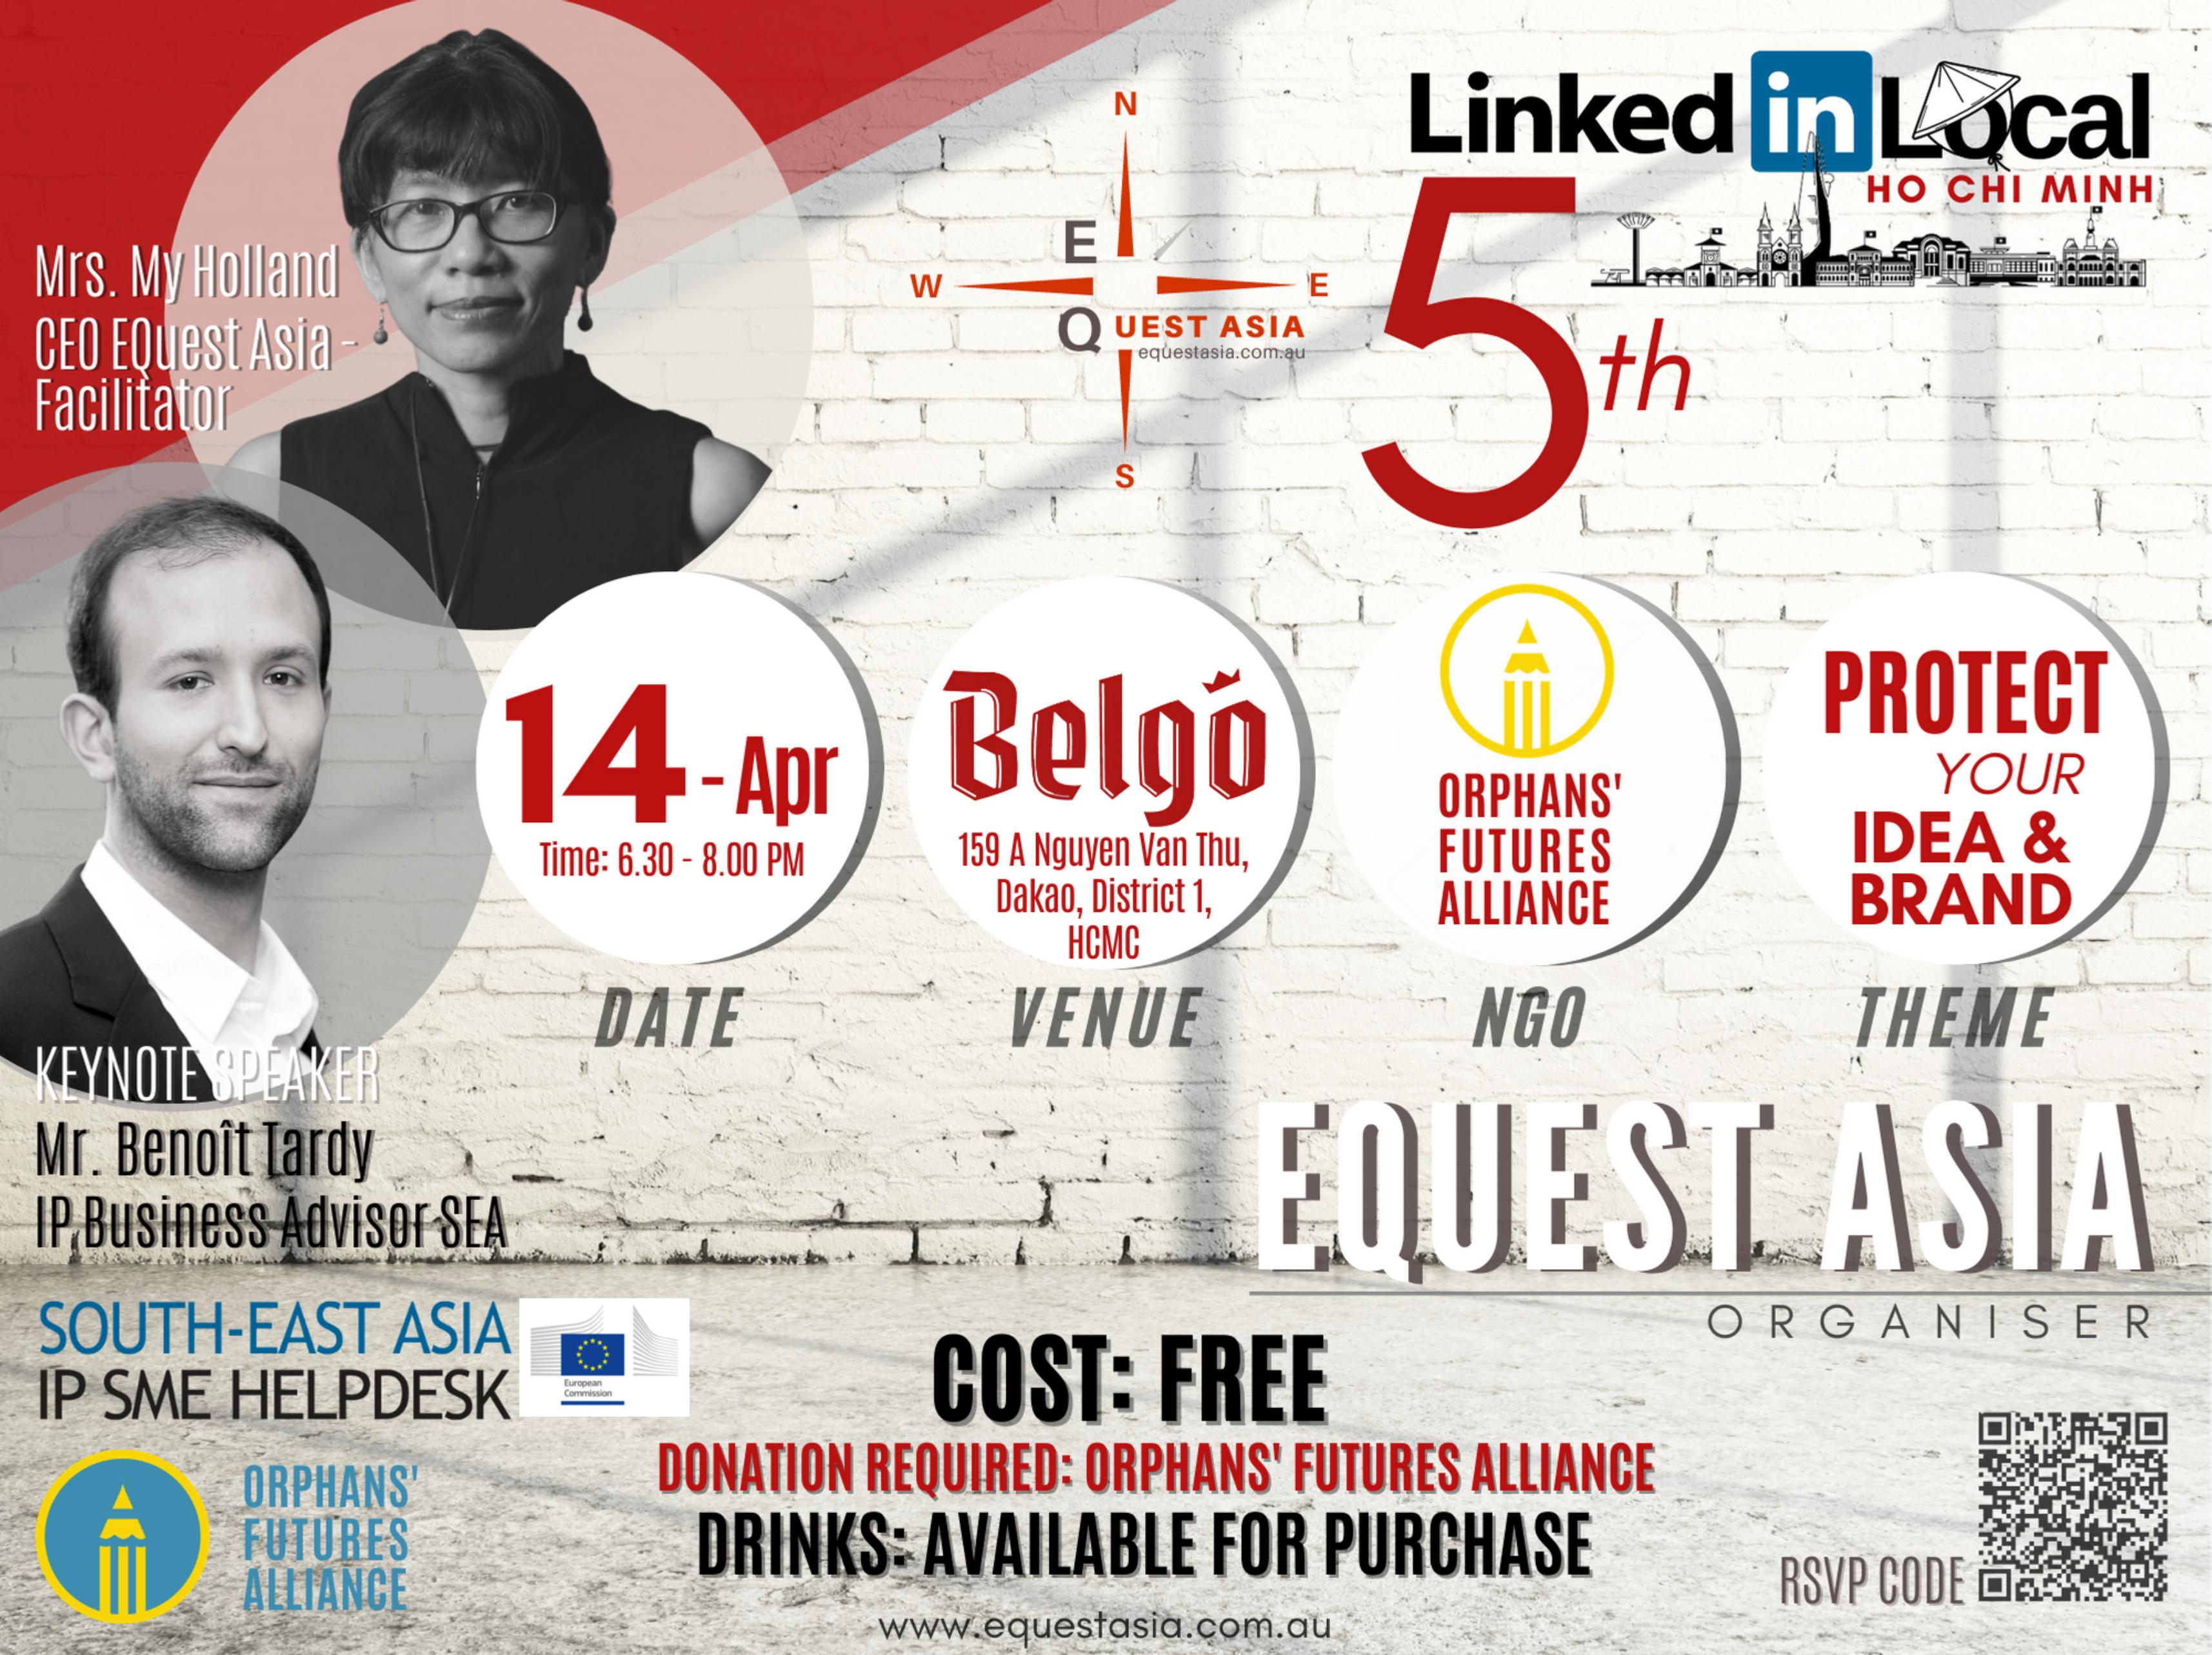 Onsite Event: Linkedinlocal #5 in Ho Chi Minh City